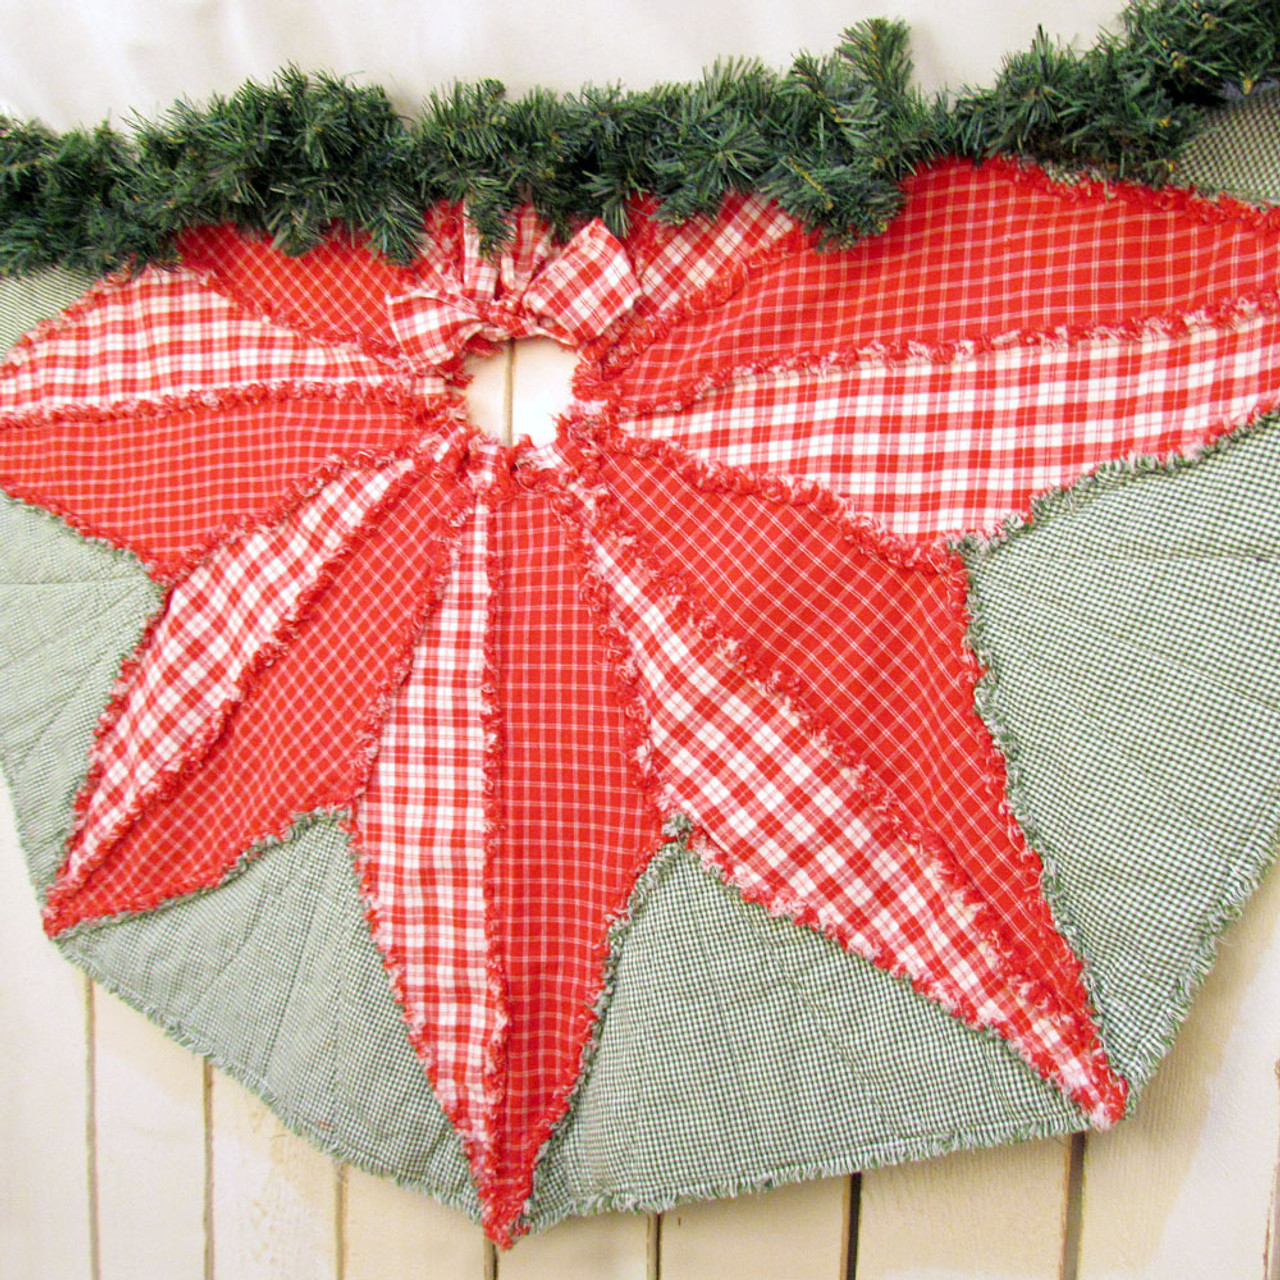 Poinsettia Star Quilted Christmas Tree Skirt Pattern - DIGITAL